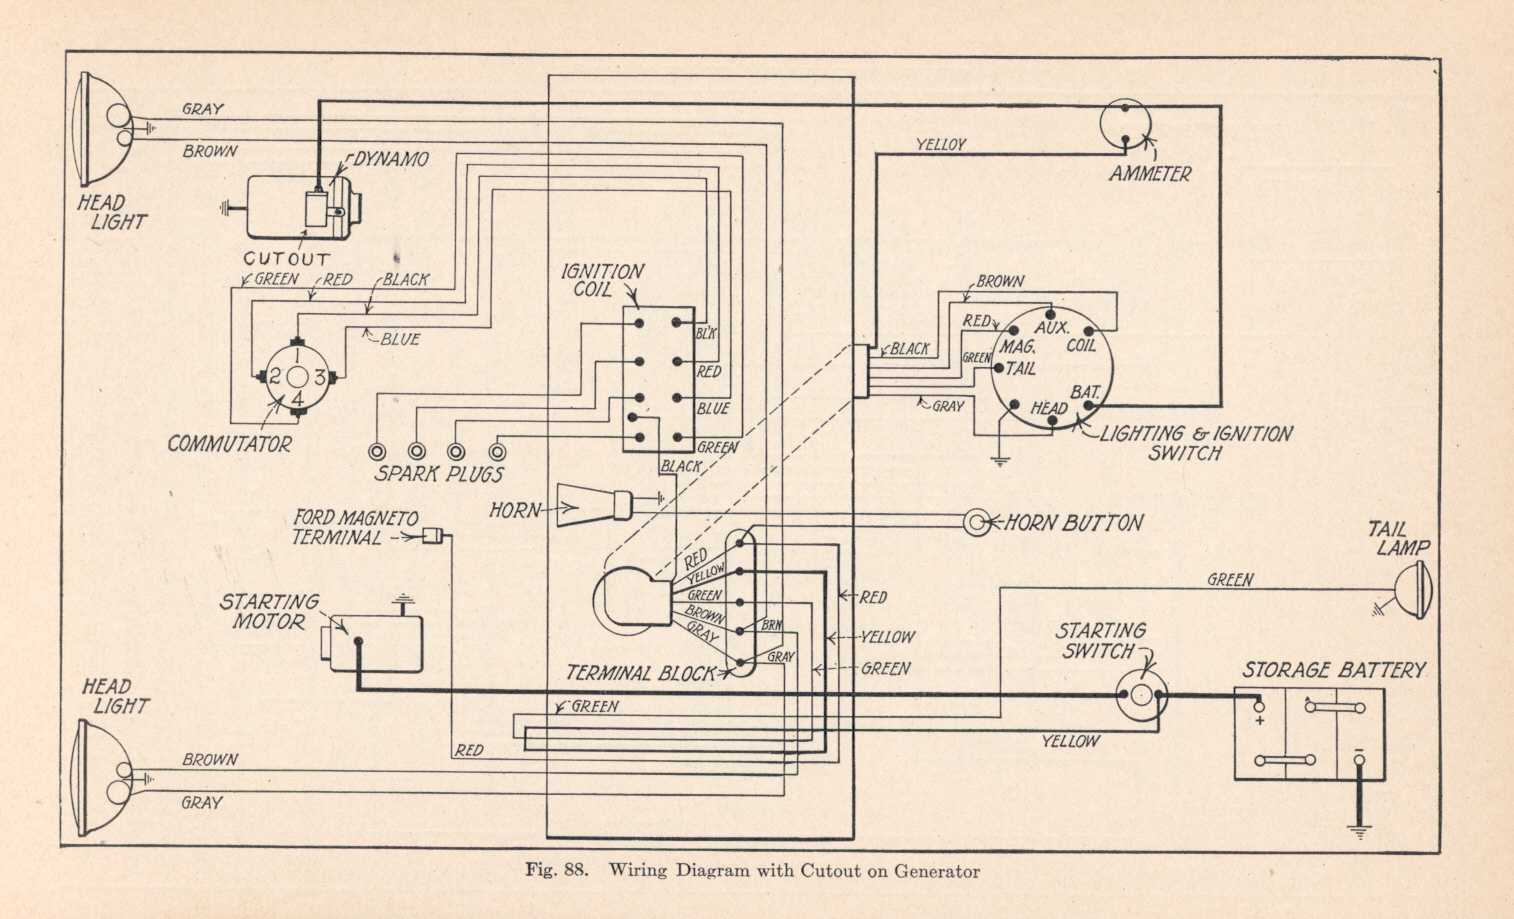 80032 model t ford forum amp meter wiring help needed model t wiring diagram at gsmportal.co